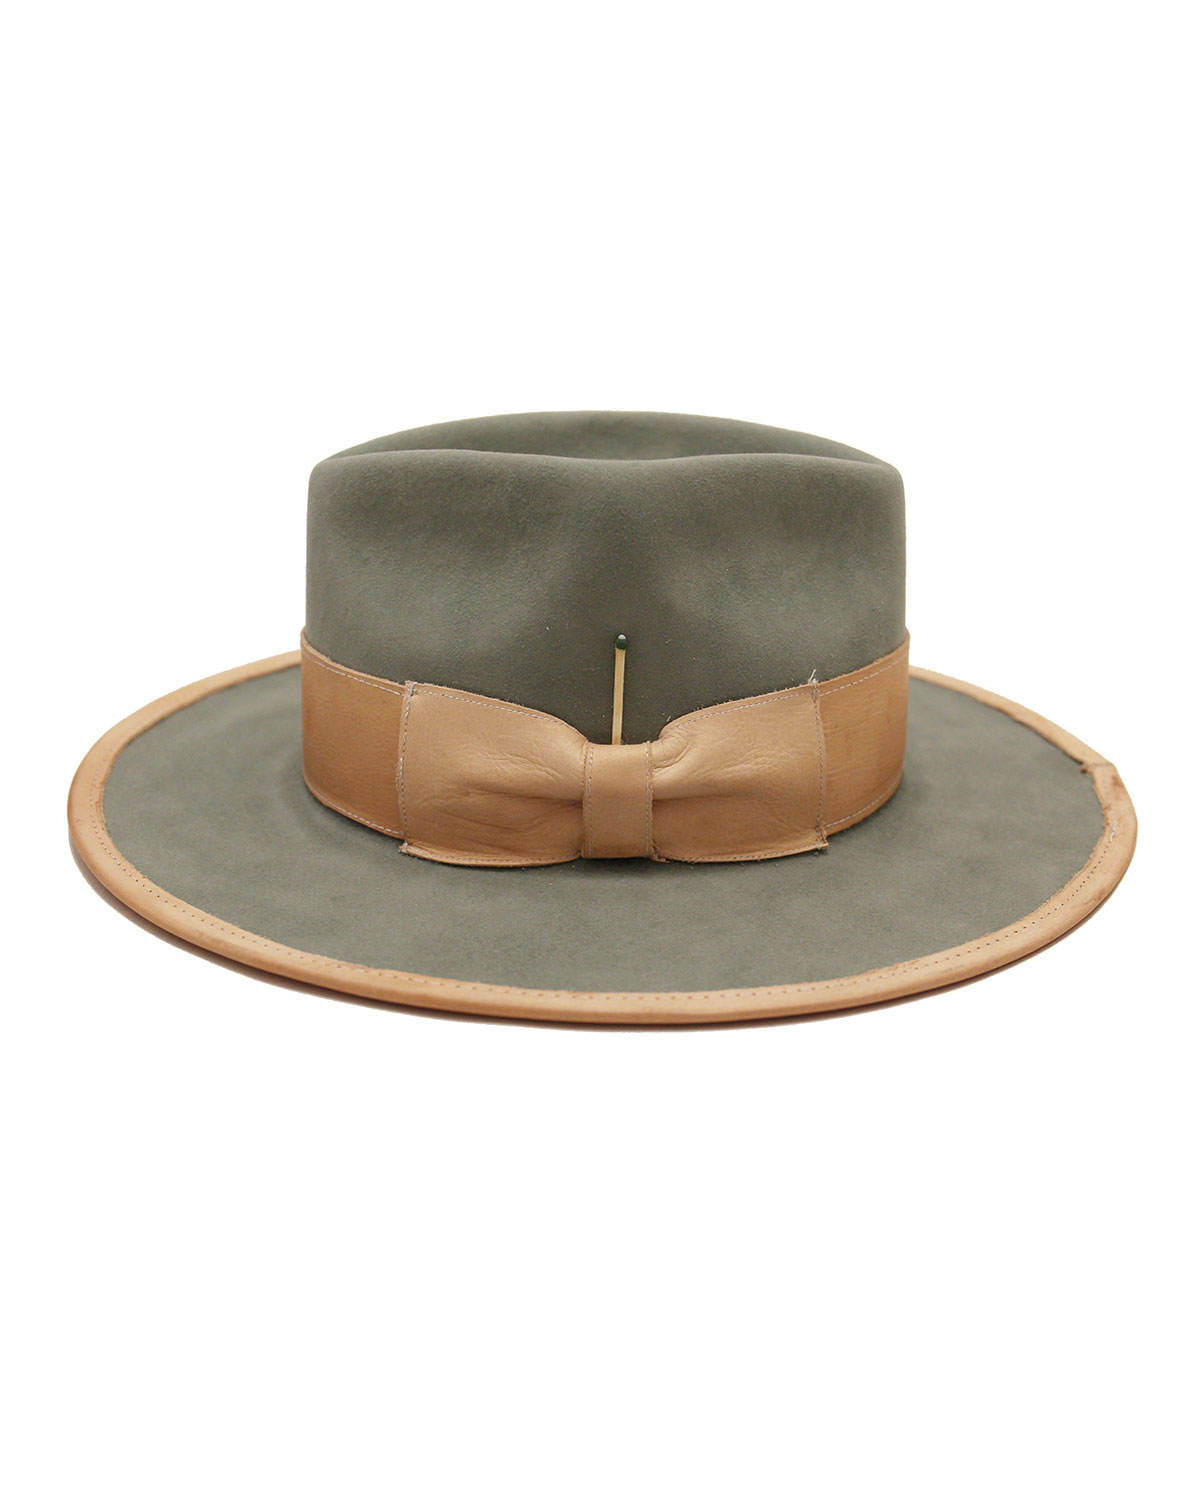 Nick Fouquet Hats MARLIN BEAVER FELT FEDORA HAT W/ LEATHER TRIM